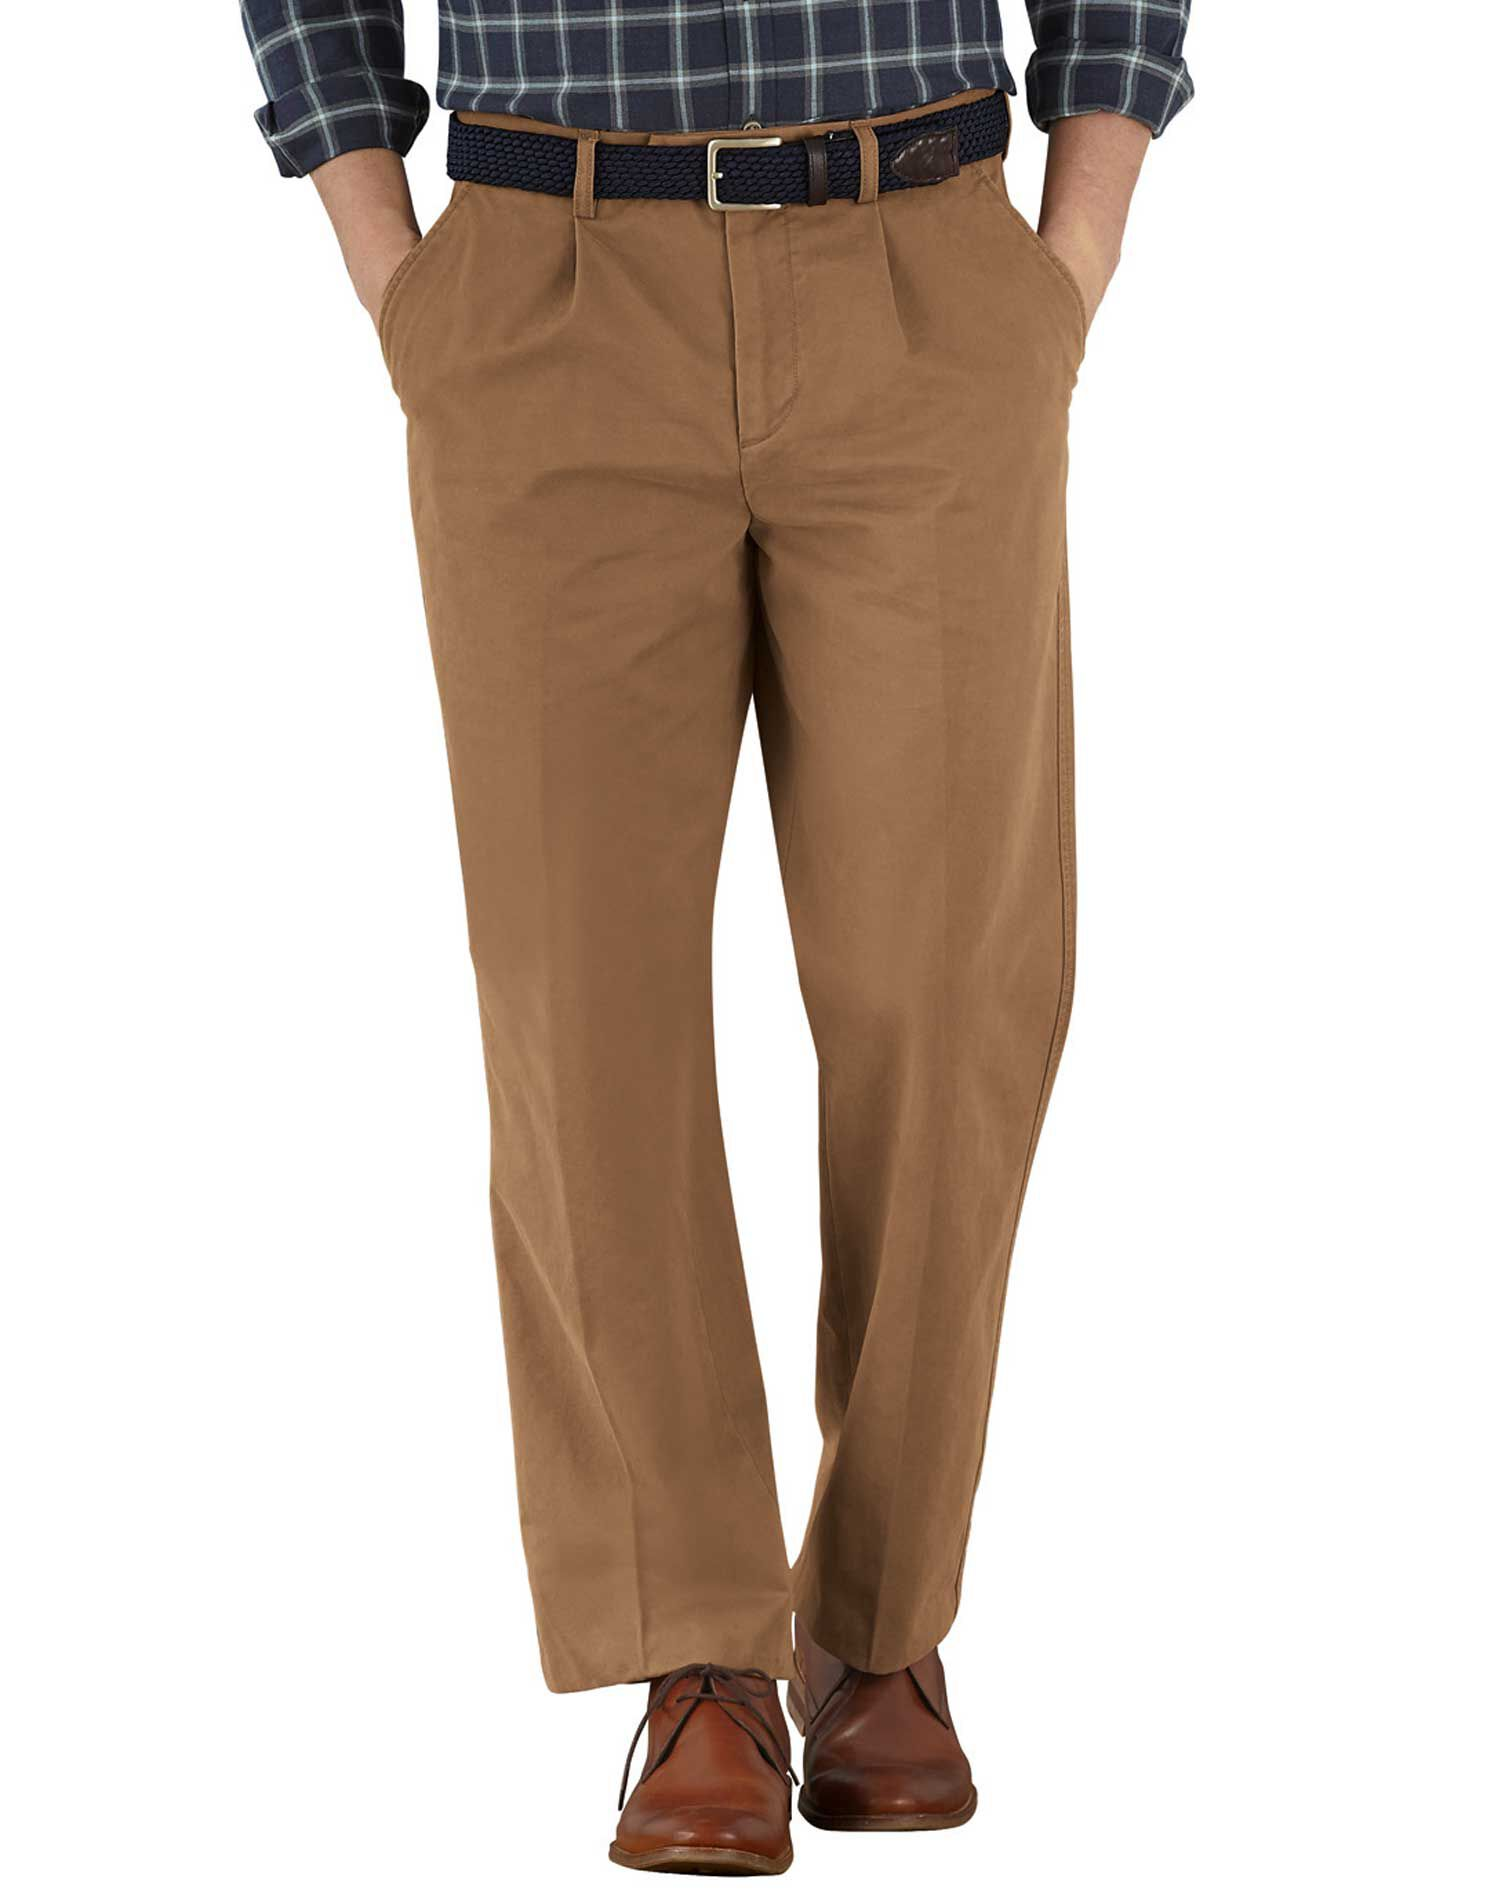 Camel Classic Fit Single Pleat Cotton Chino Trousers Size W32 L32 by Charles Tyrwhitt